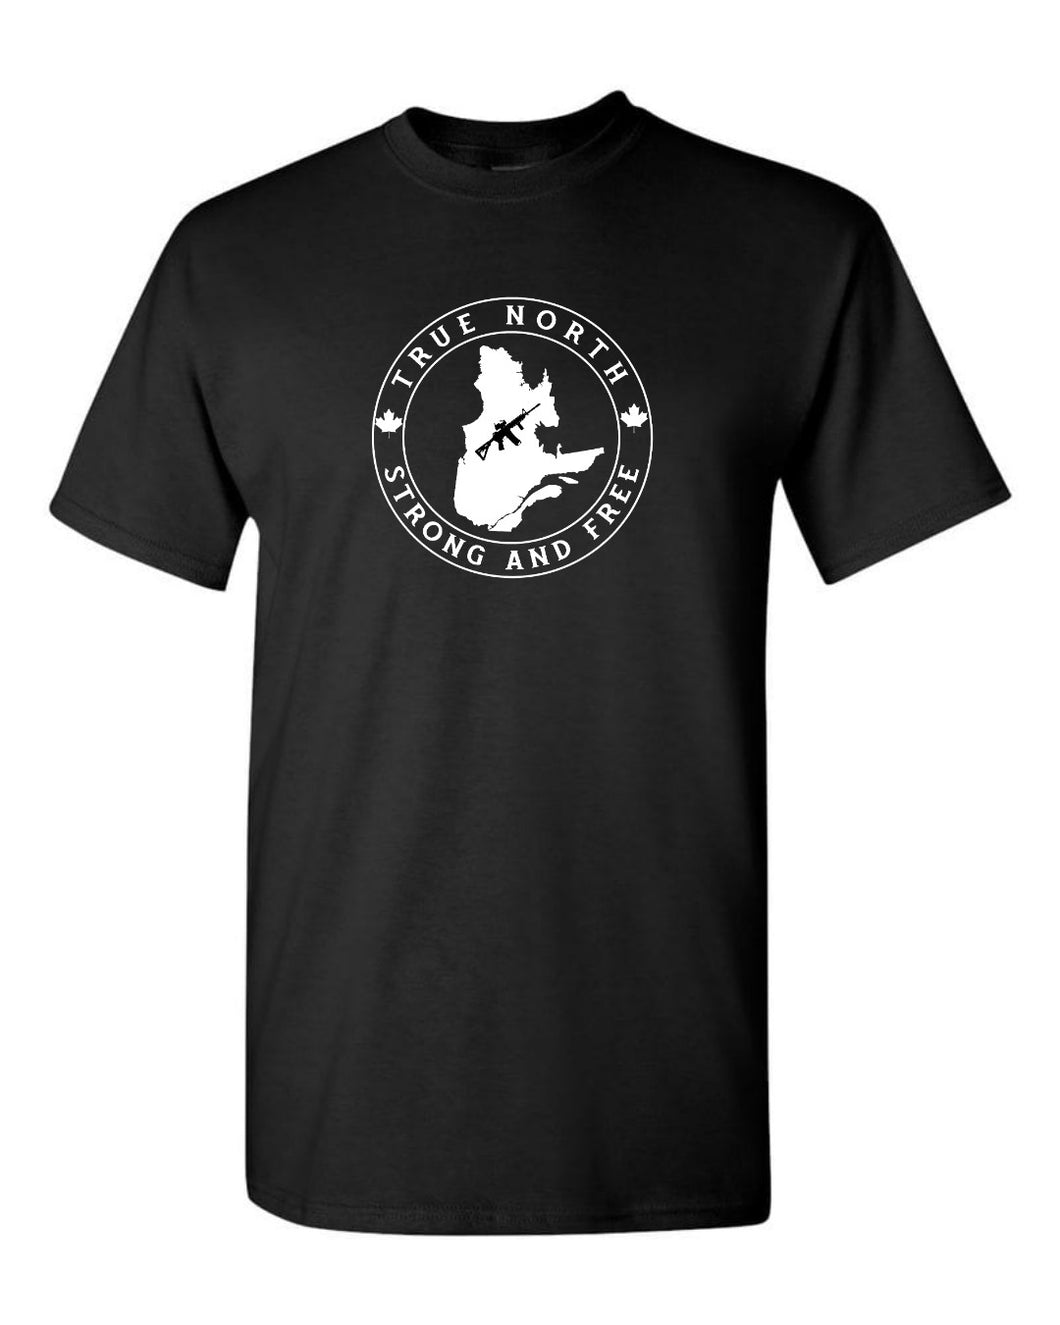 Black Quebec T-shirt